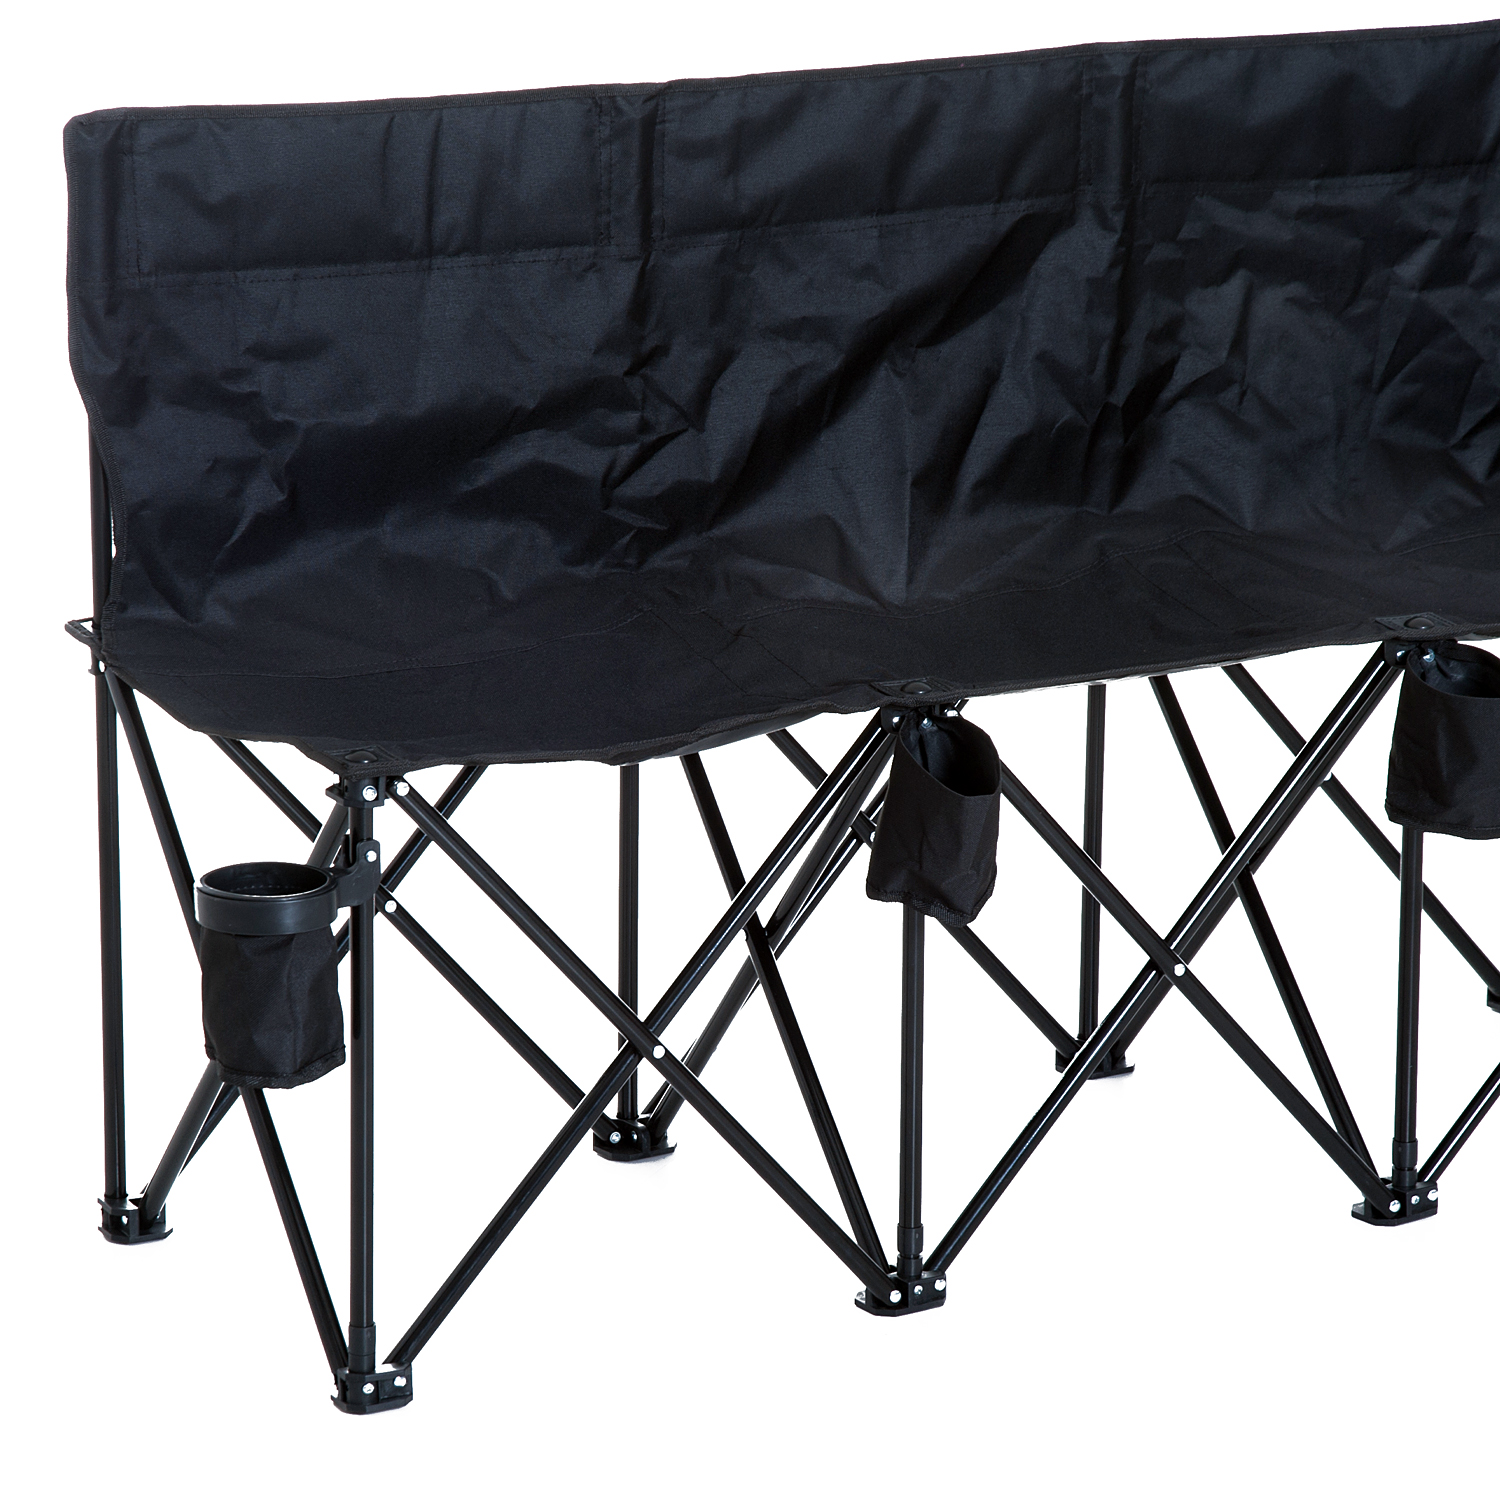 Folding Bench 6 Seat Camping Cup Holder Picnic Steel Blue Outdoor Garden